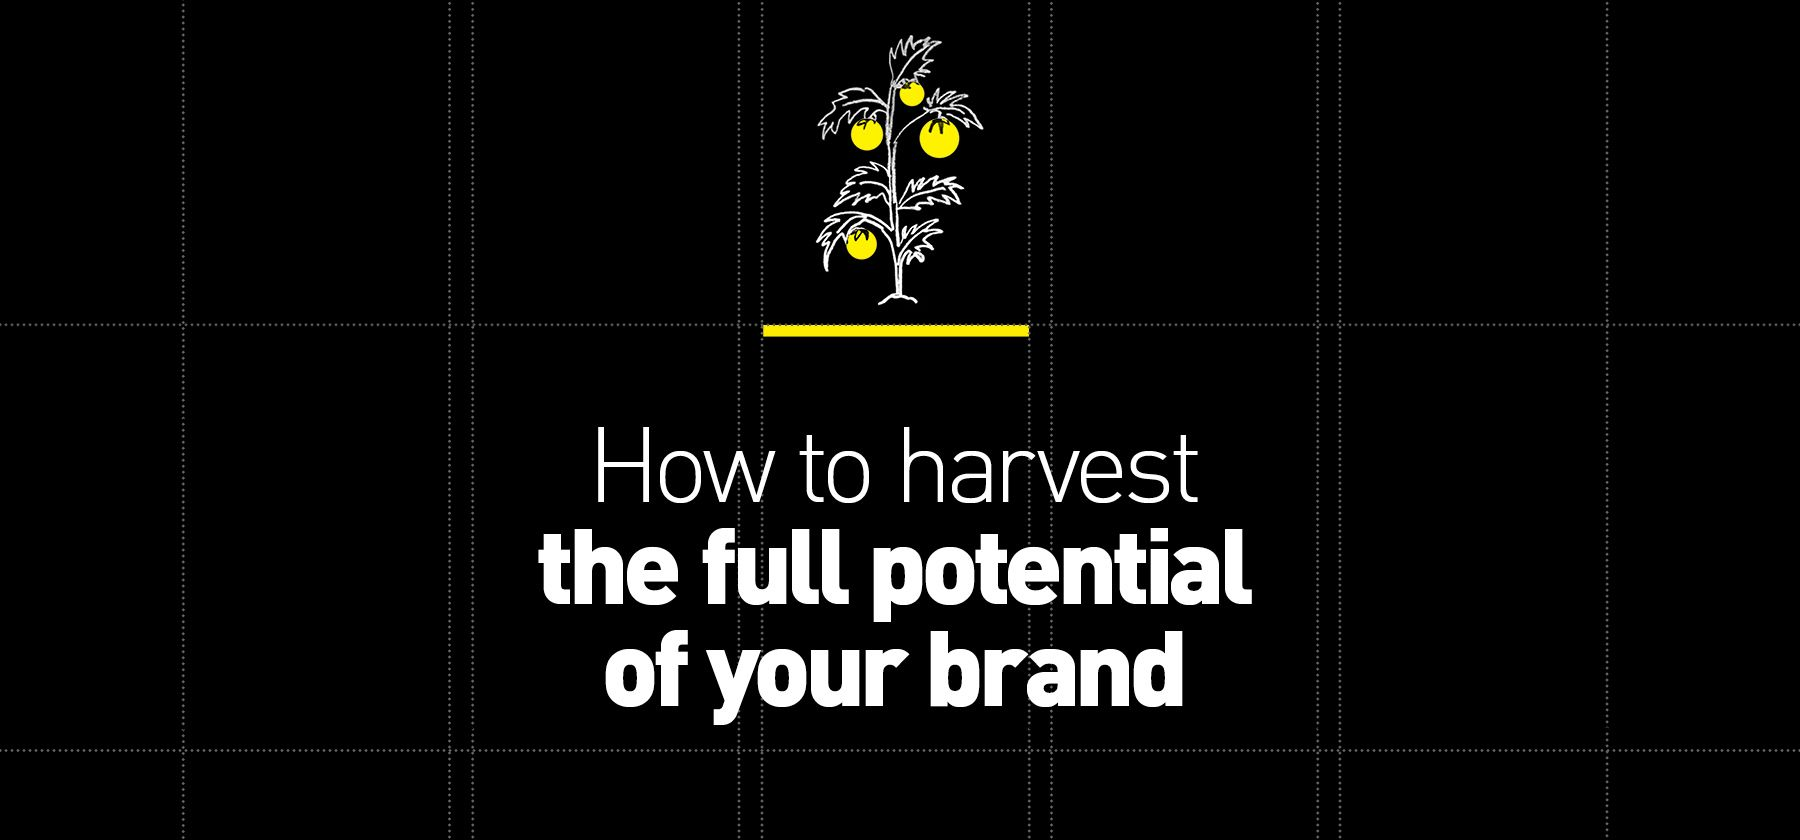 How to harvest the full potential of your brand